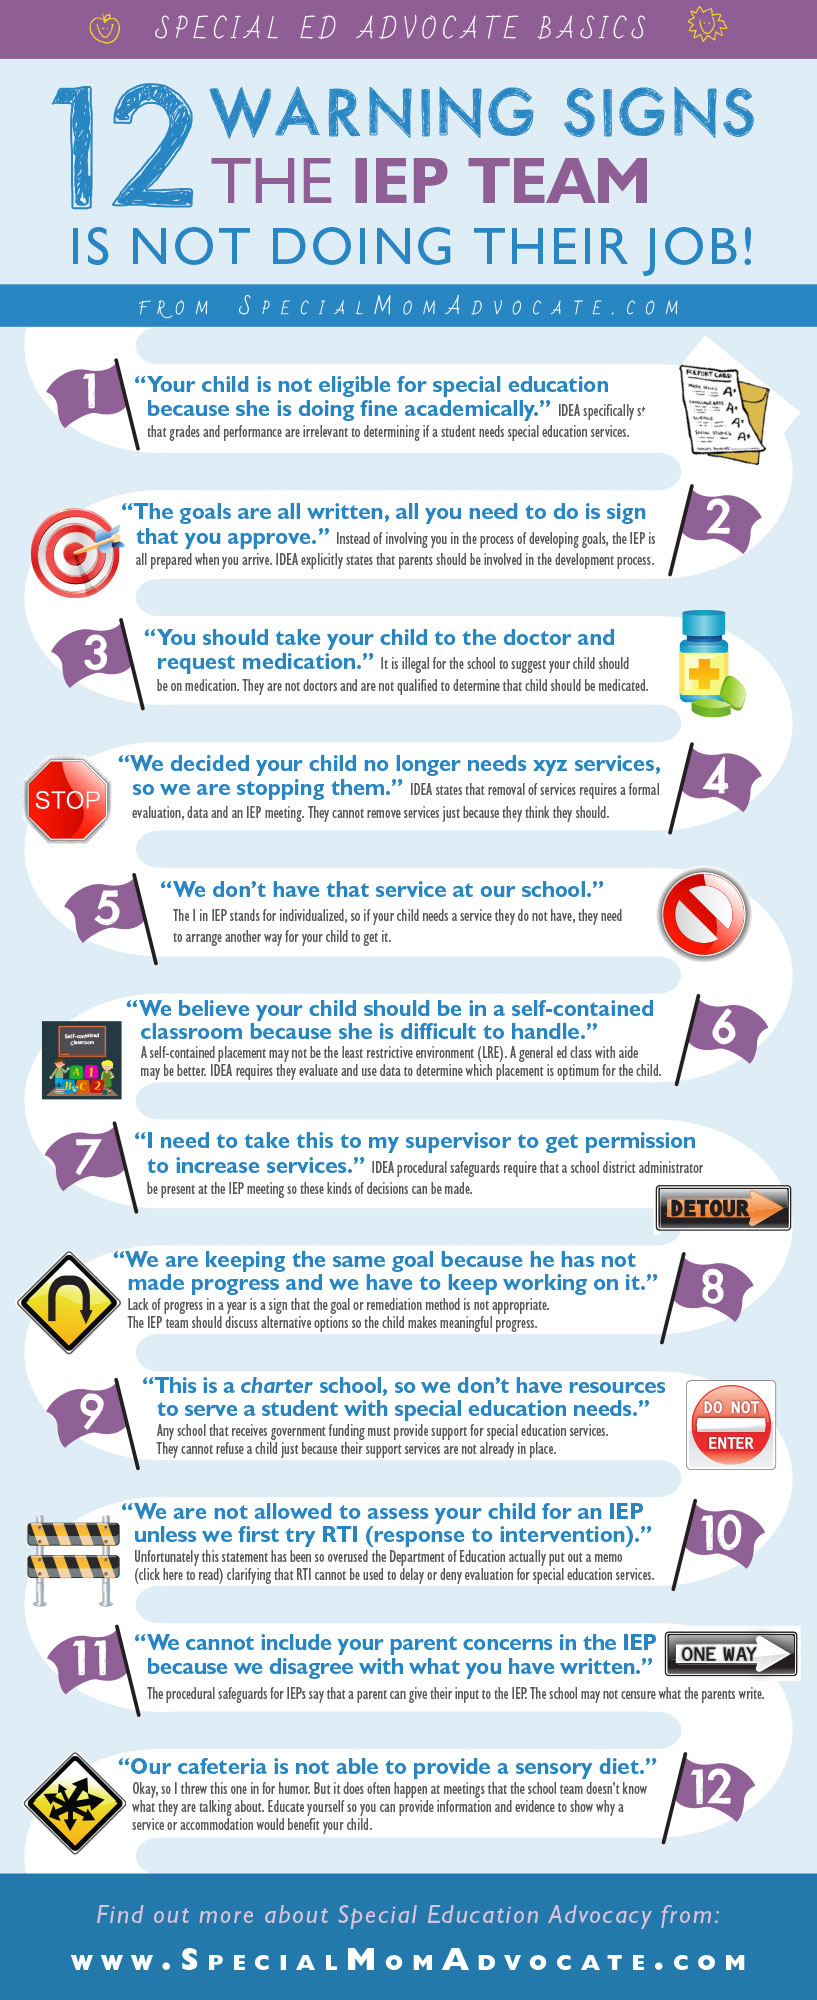 To My Childs Iep Case Manager >> 12 Warning Signs The Iep Team Is Not Doing Their Job By Making Excuses